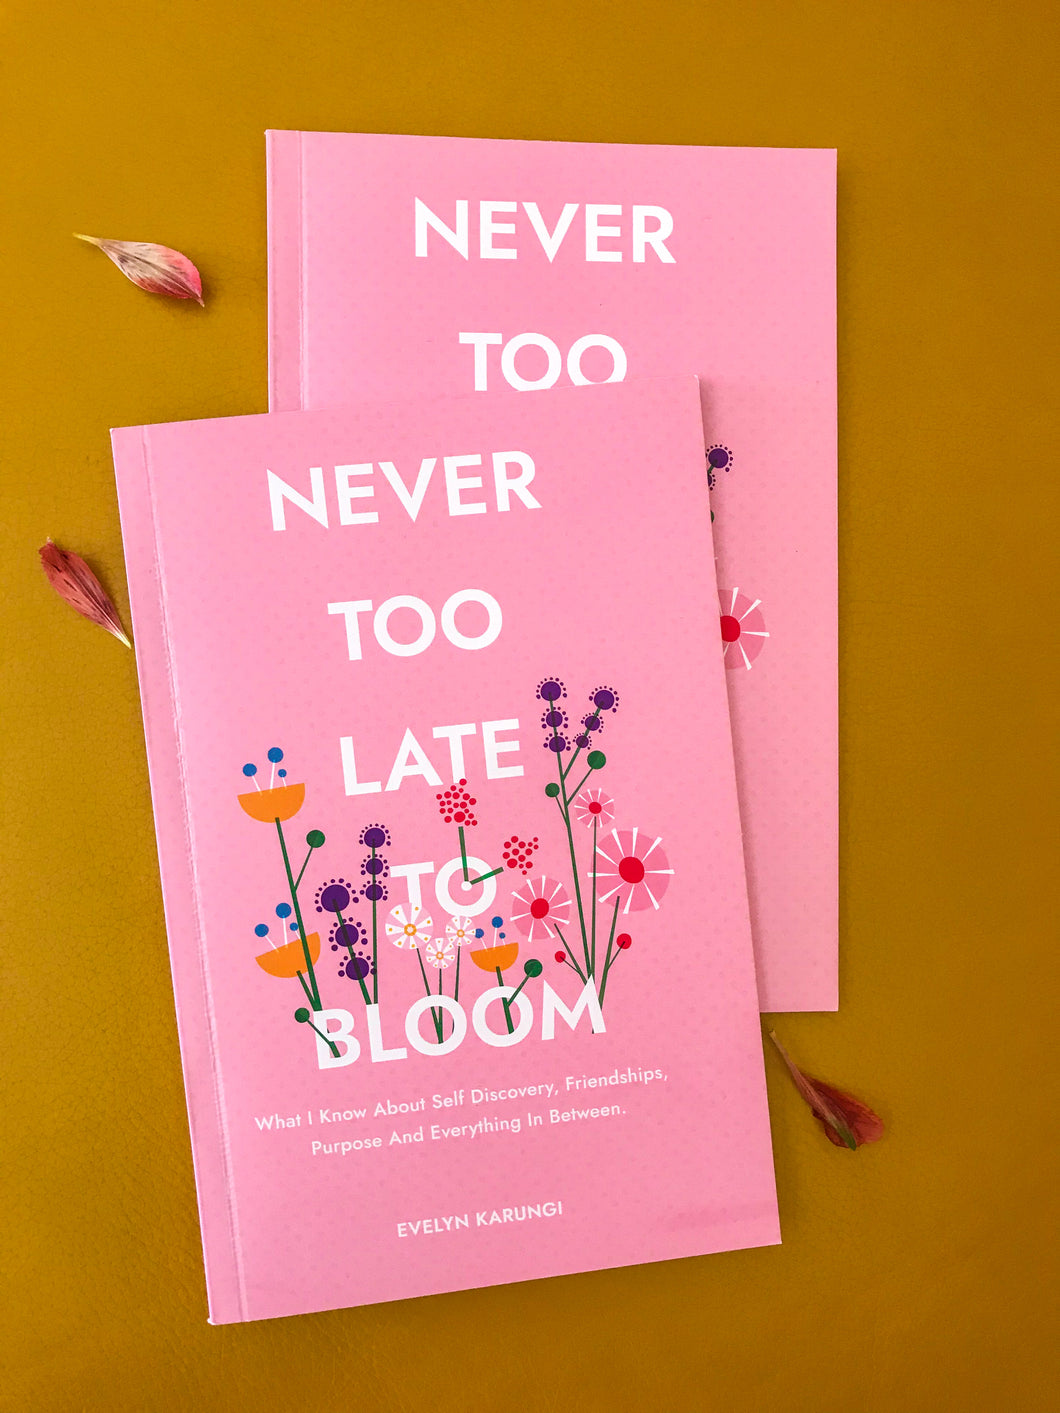 Never Too Late to Bloom by Evelyn Karungi